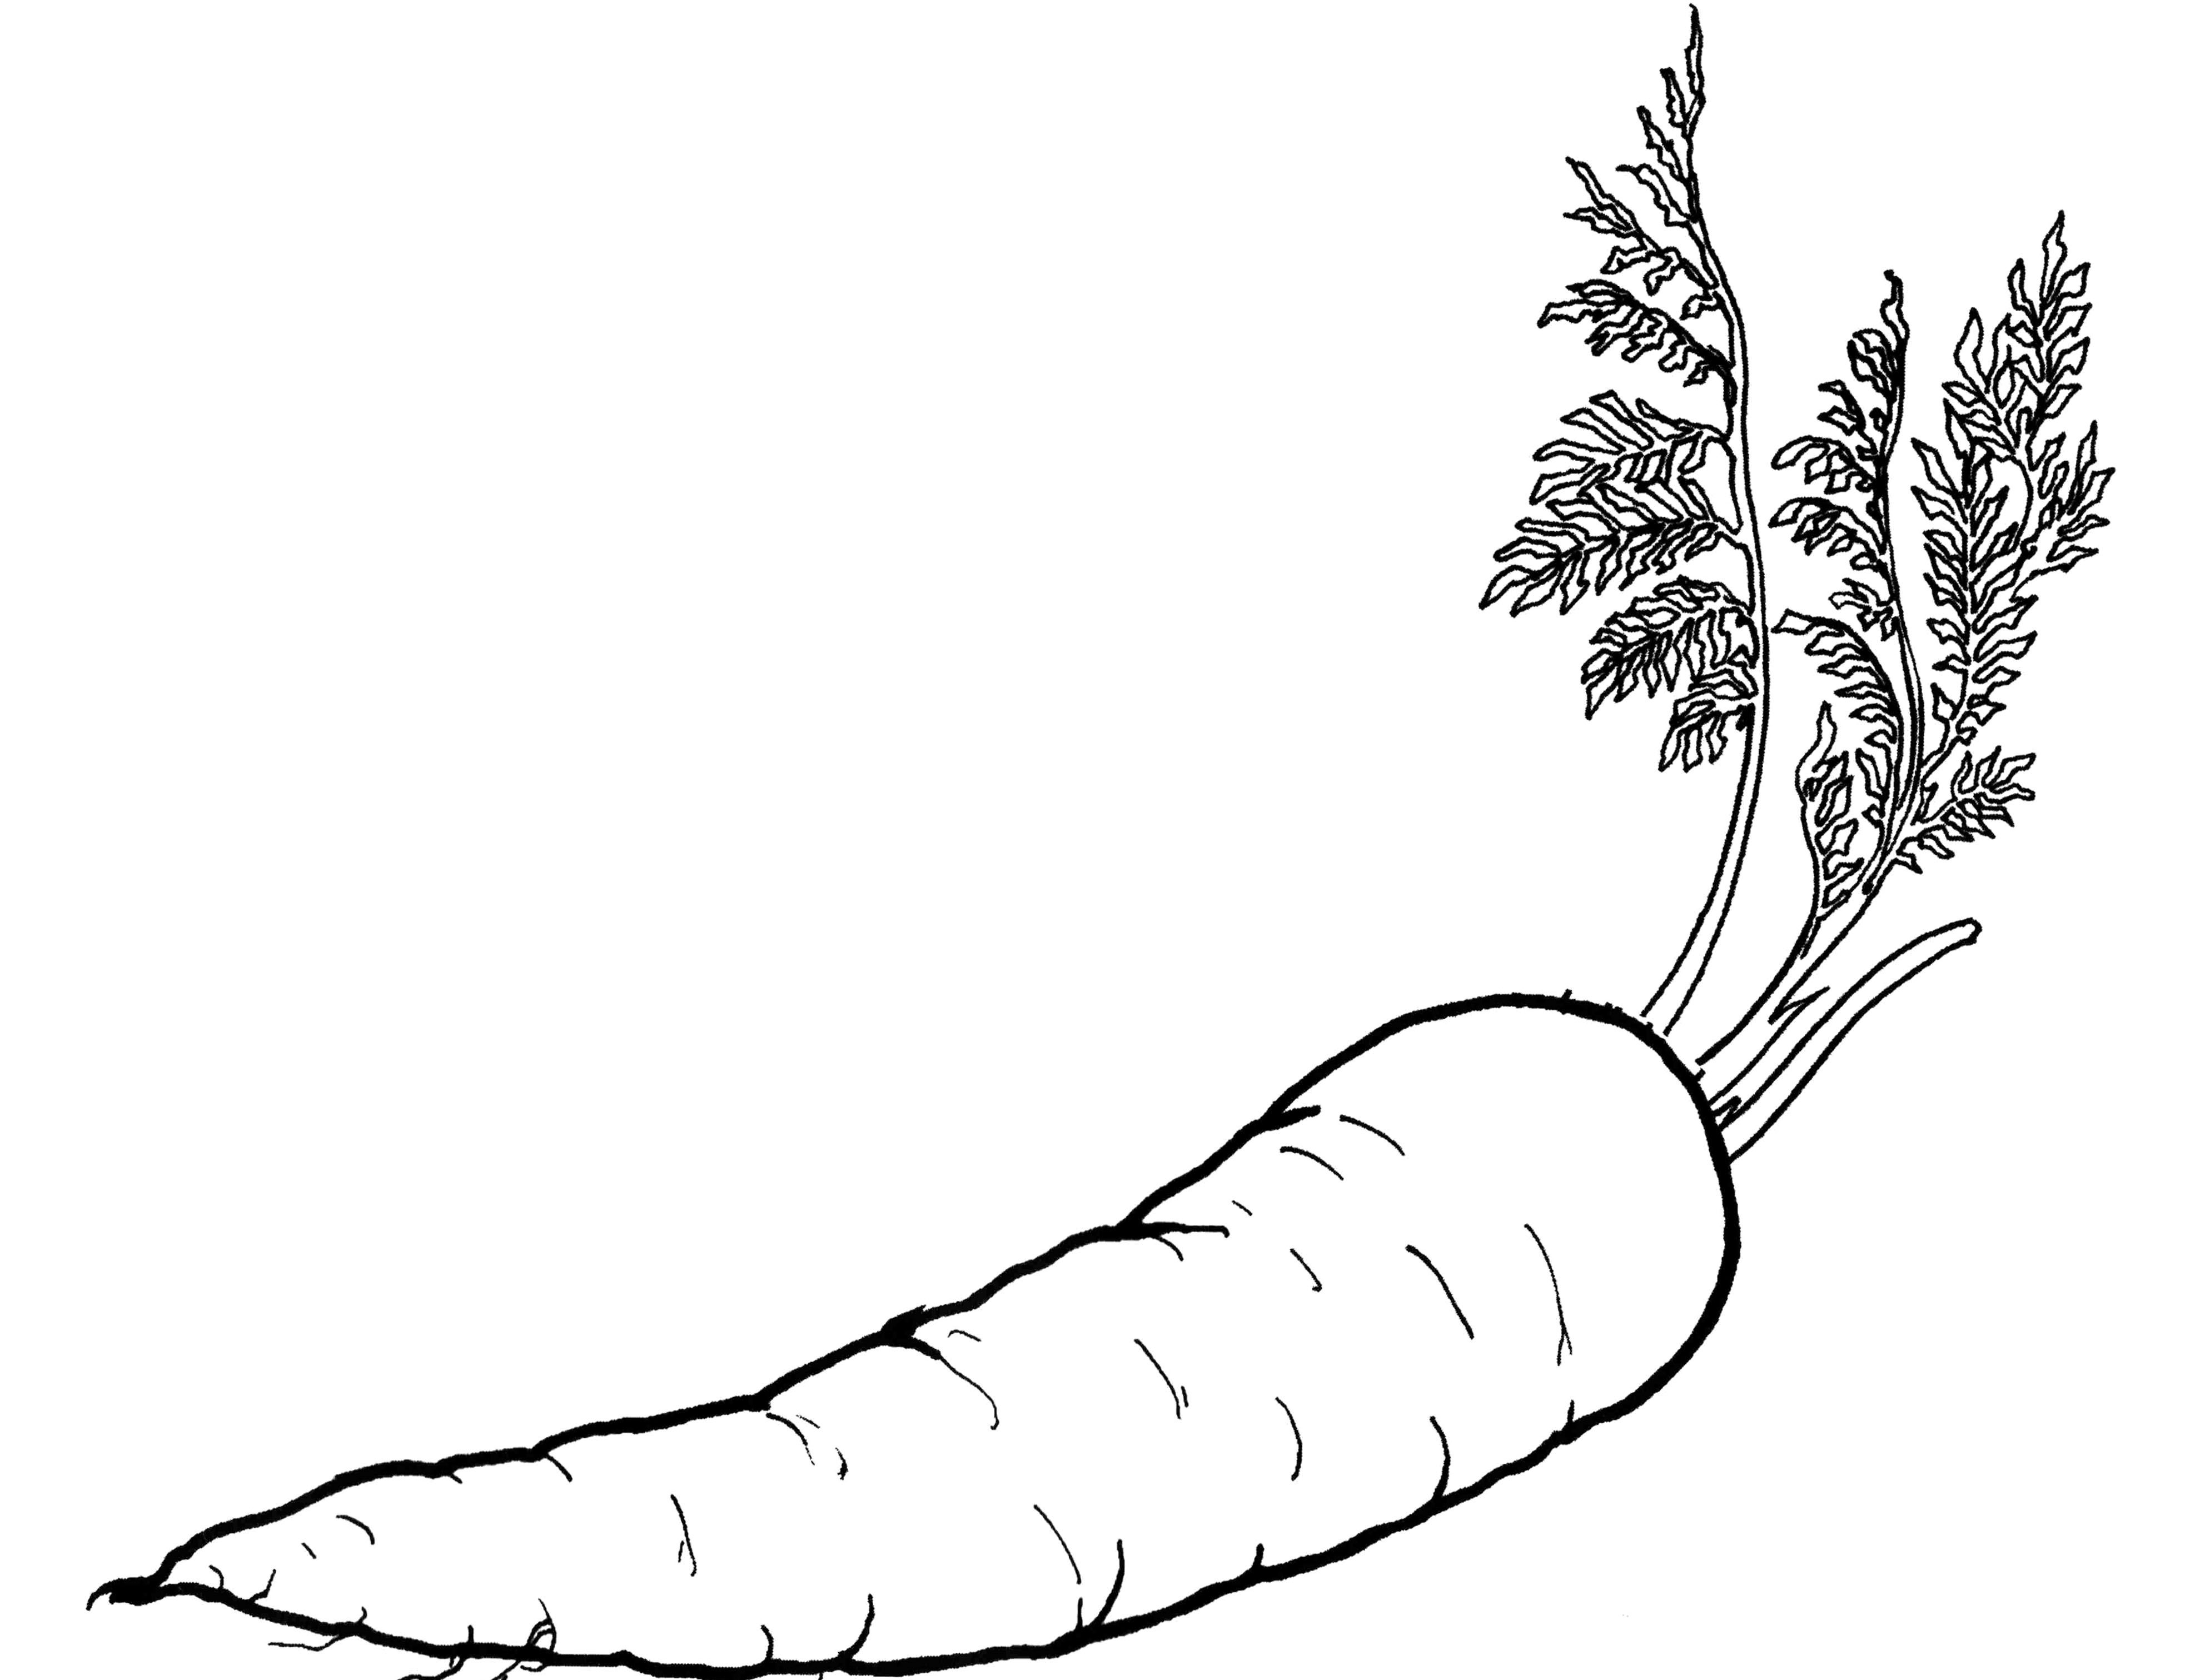 Chinese Vegetable Coloring Page - Coloring Pages For All Ages